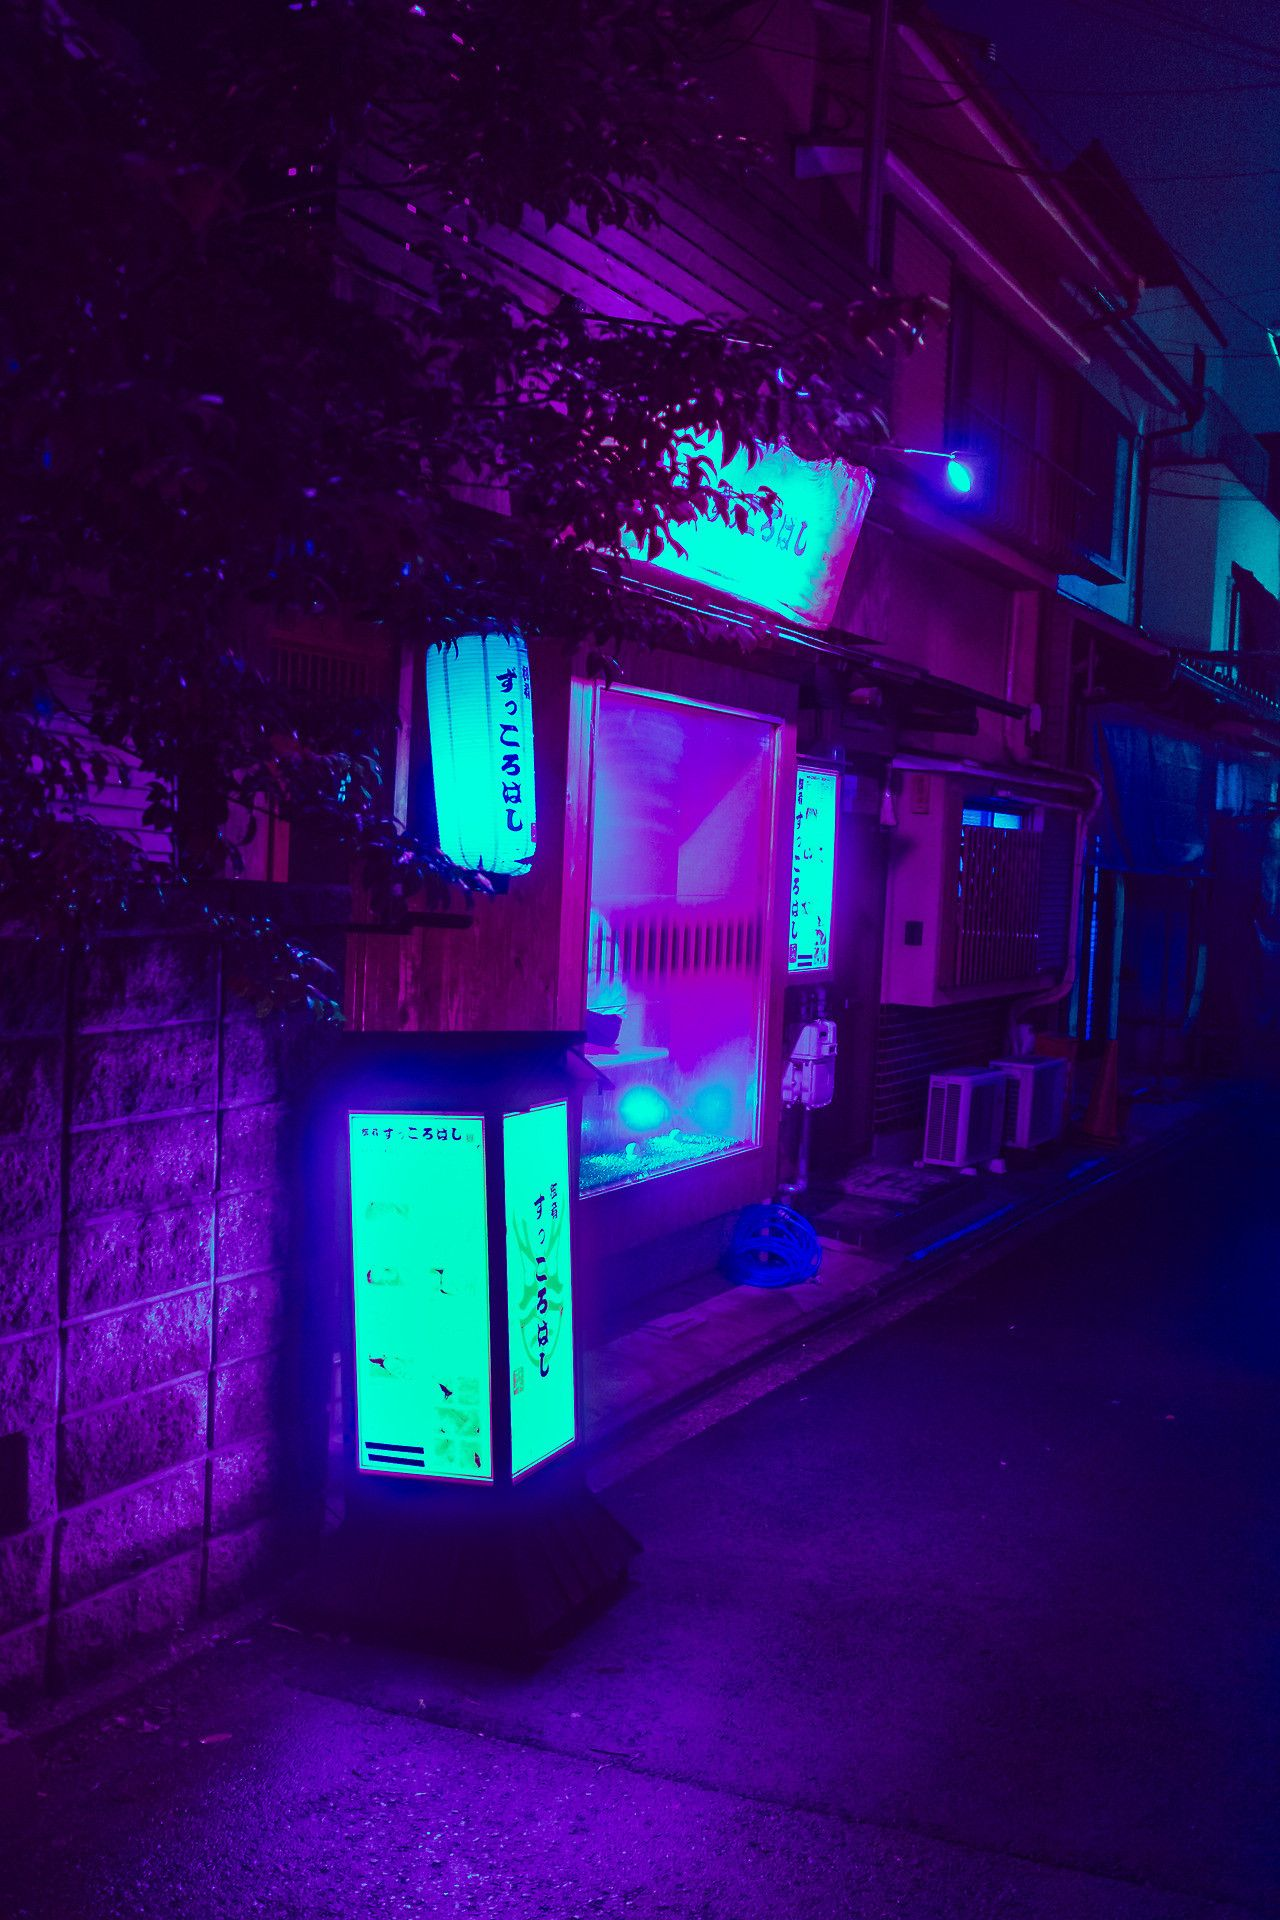 de57af tumblr neon purple tumblr neon aesthetic wallpaper iphone